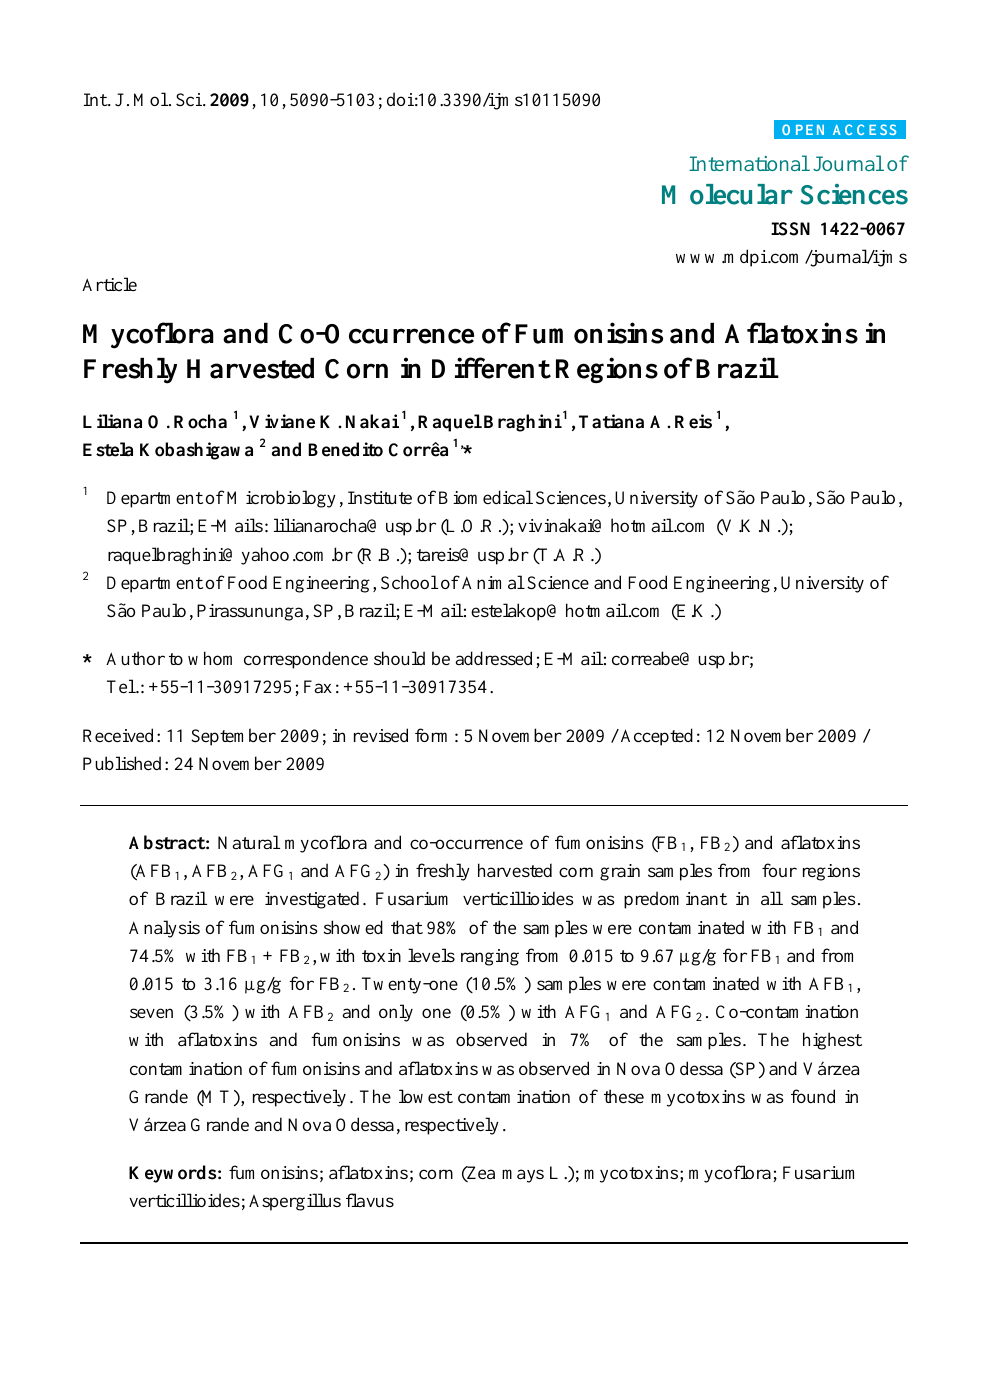 Mycoflora and Co-Occurrence of Fumonisins and Aflatoxins in